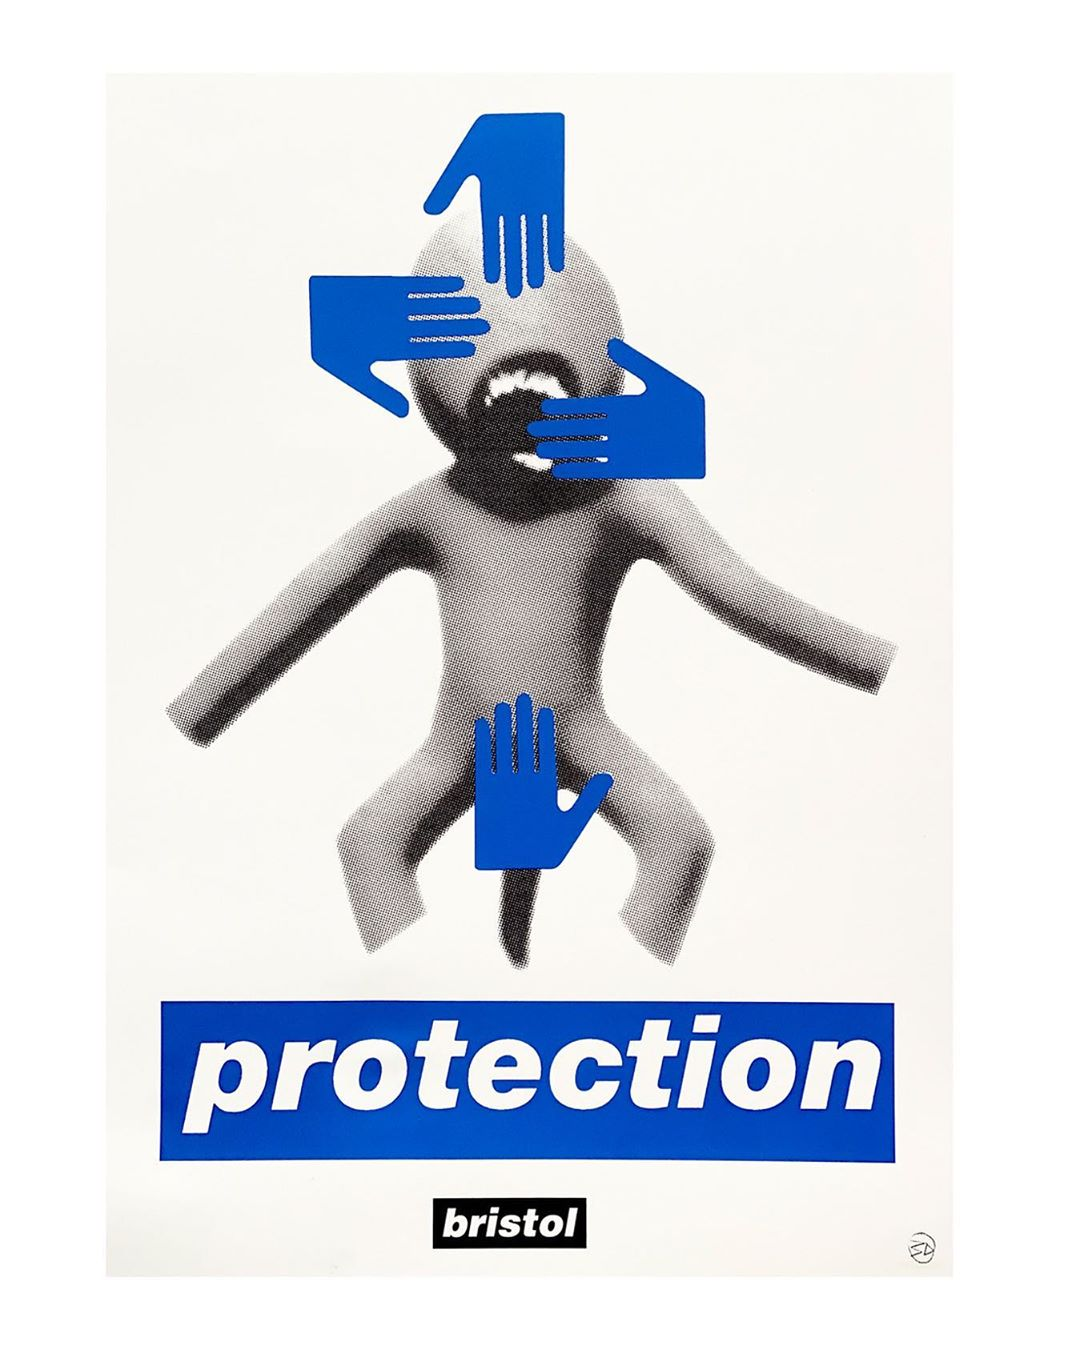 NHS protection 1